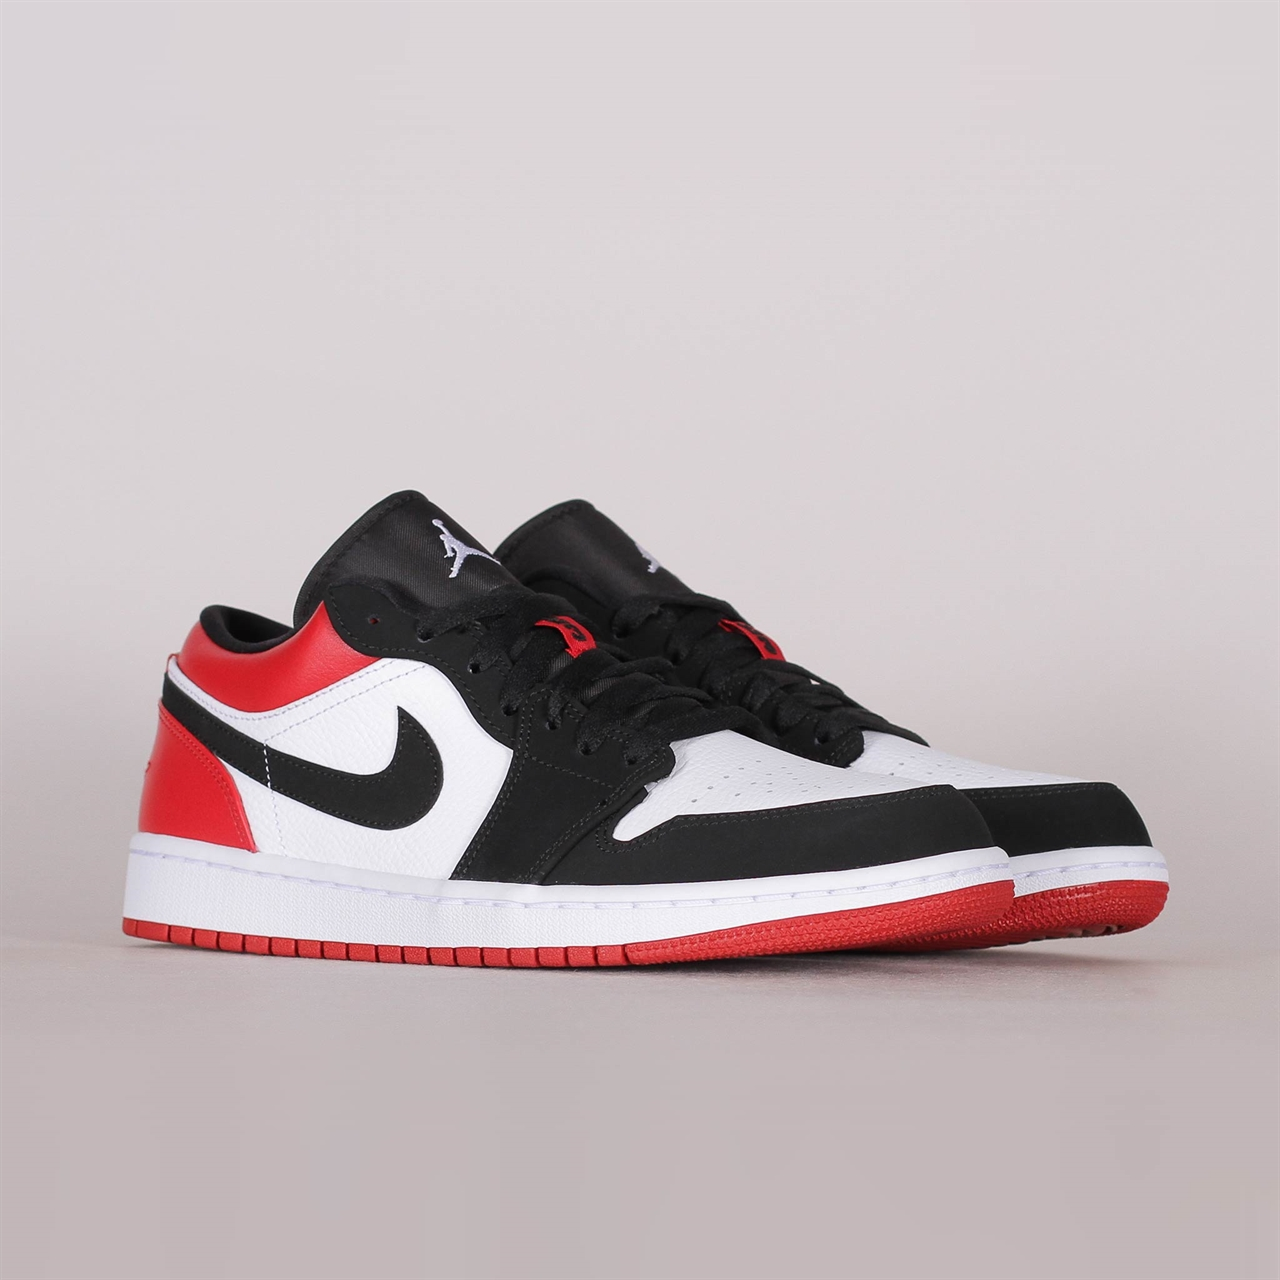 buy popular 278ba 5a7d9 Nike Air 1 Low Black Toe (553558-116)